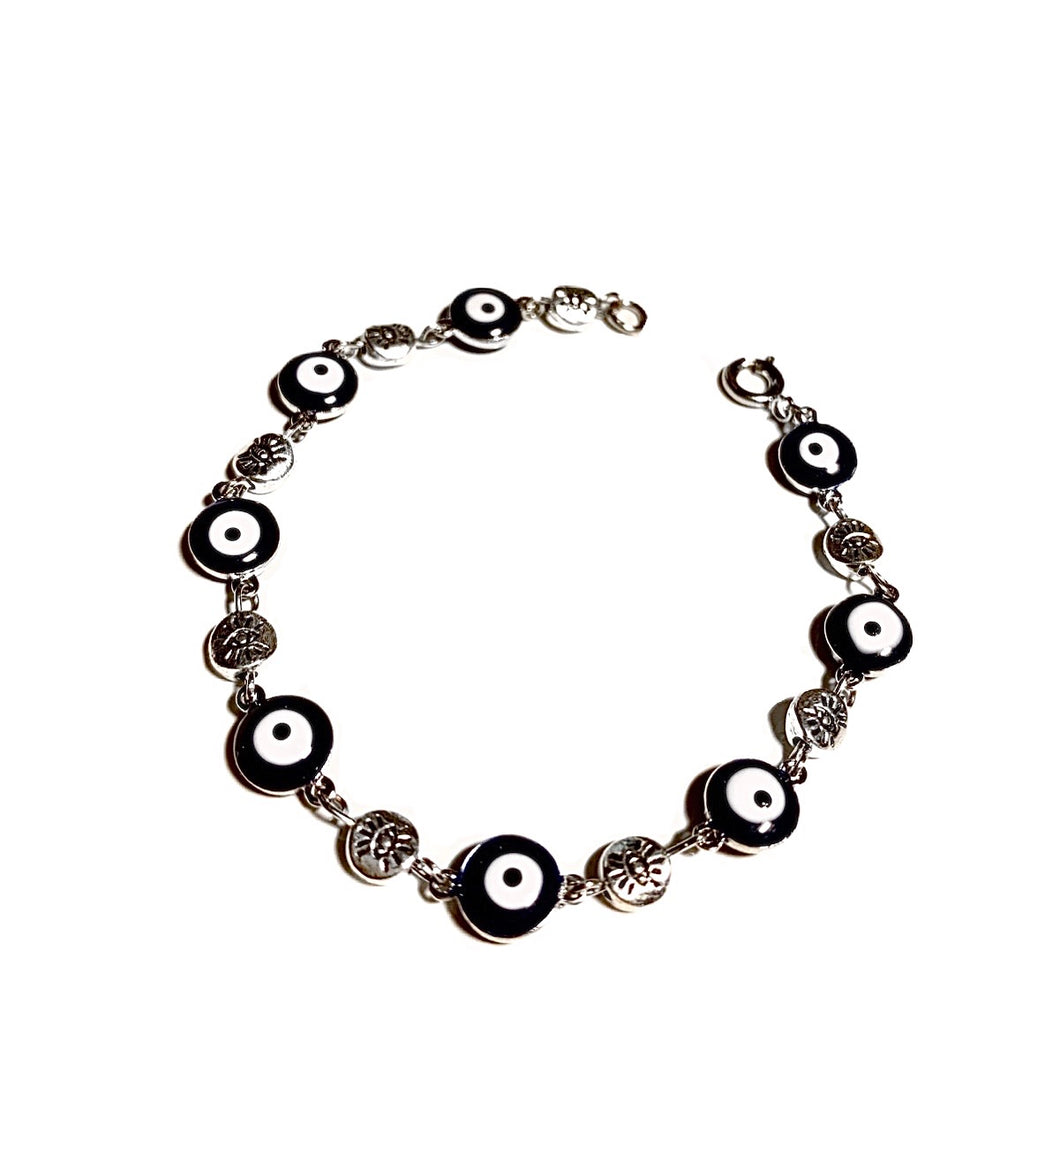 'All Seeing Eye' Bracelet